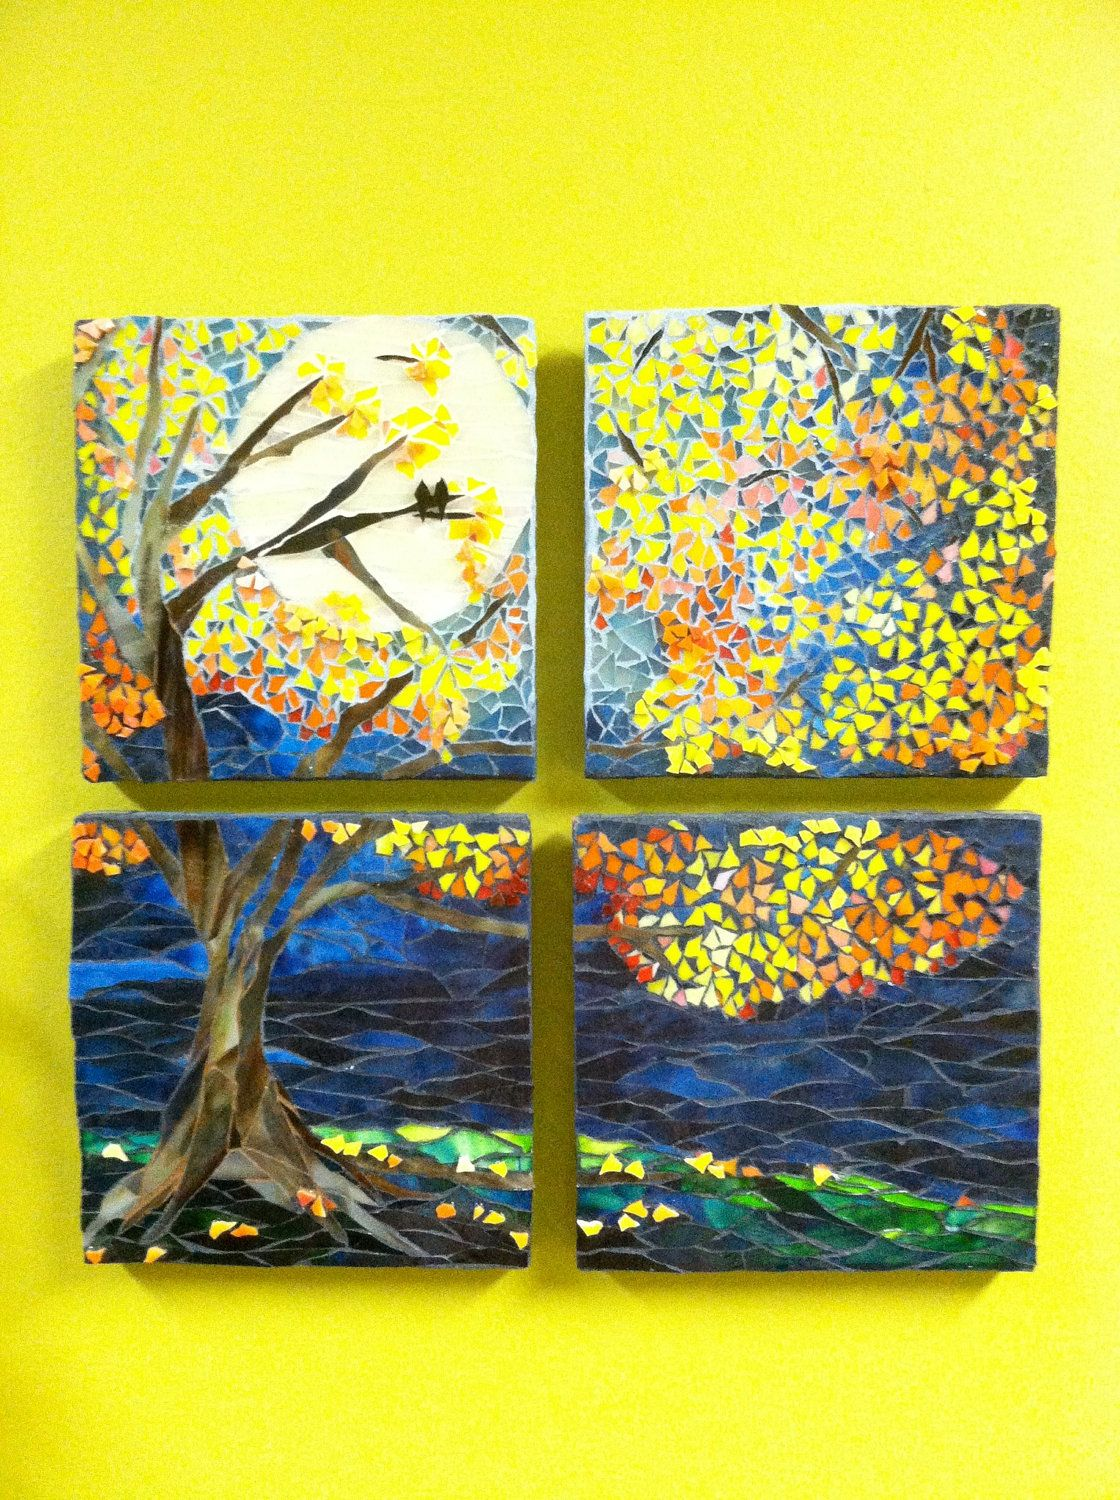 Mosaic Tree Wall Decor | Mosaics, Wall decor and Walls